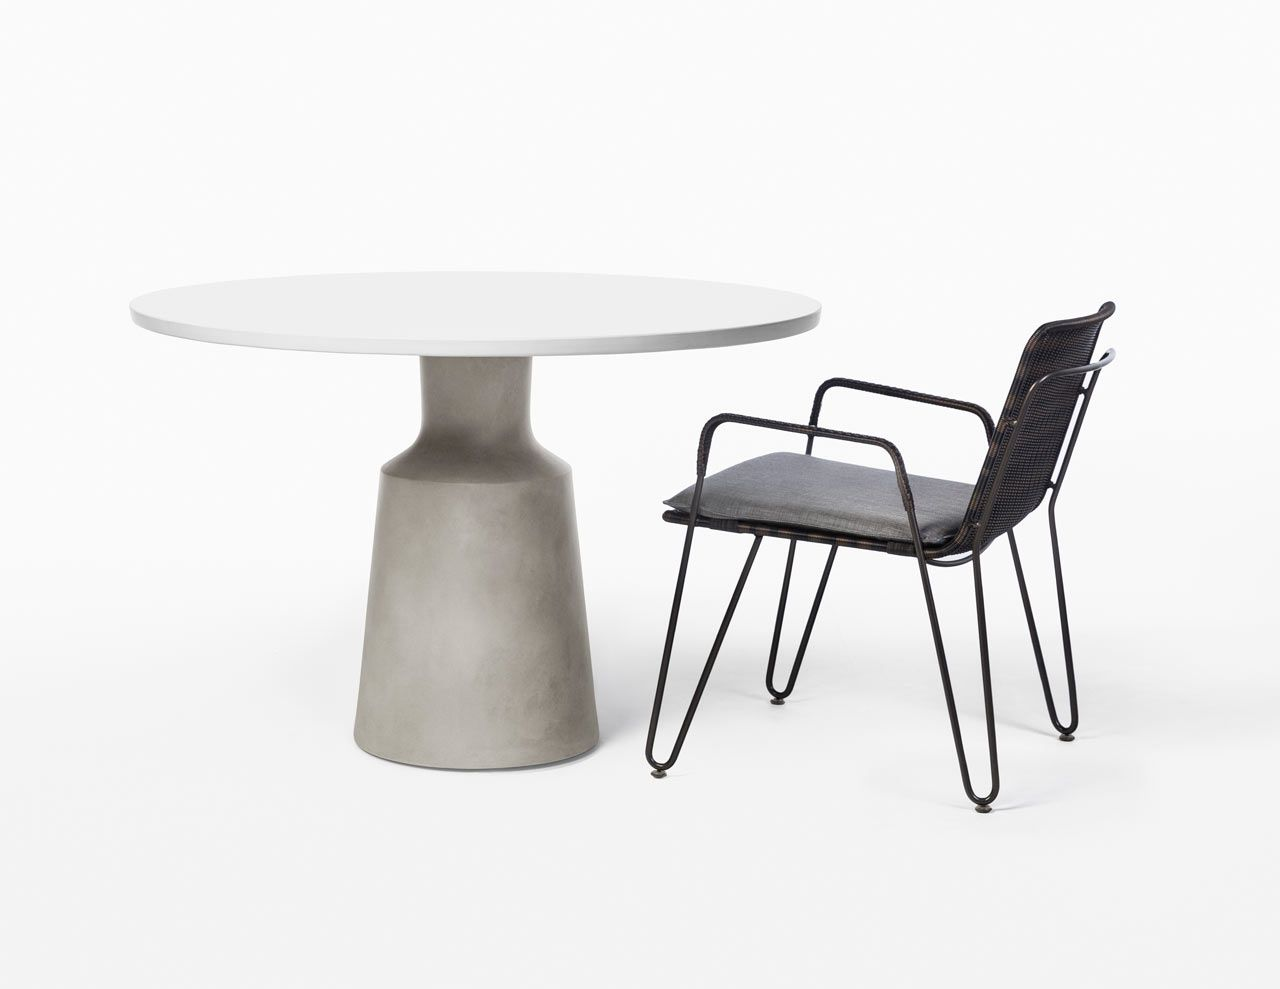 HOLLY HUNT Presents A Sea Inspired Outdoor Furniture Collection